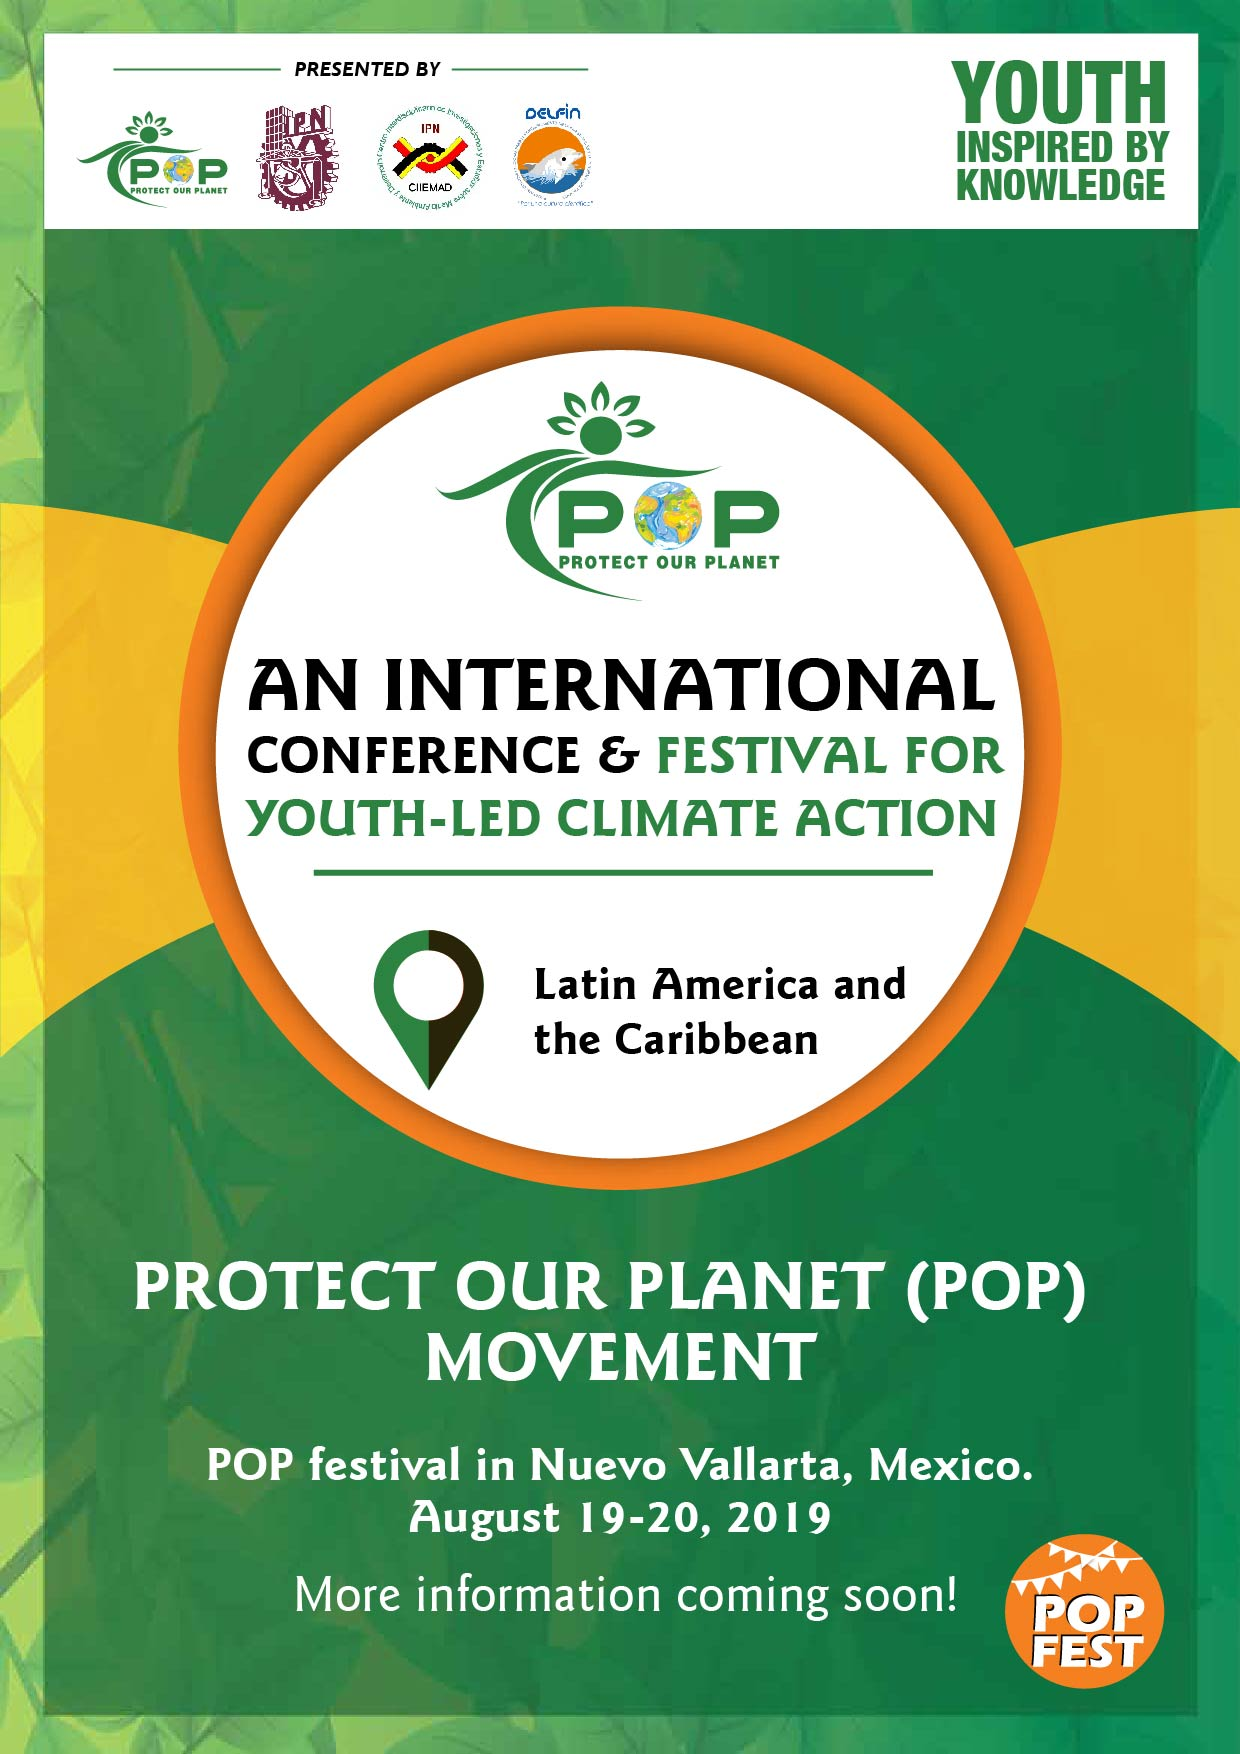 International Conference and Festival for Youth-Led Climate Action